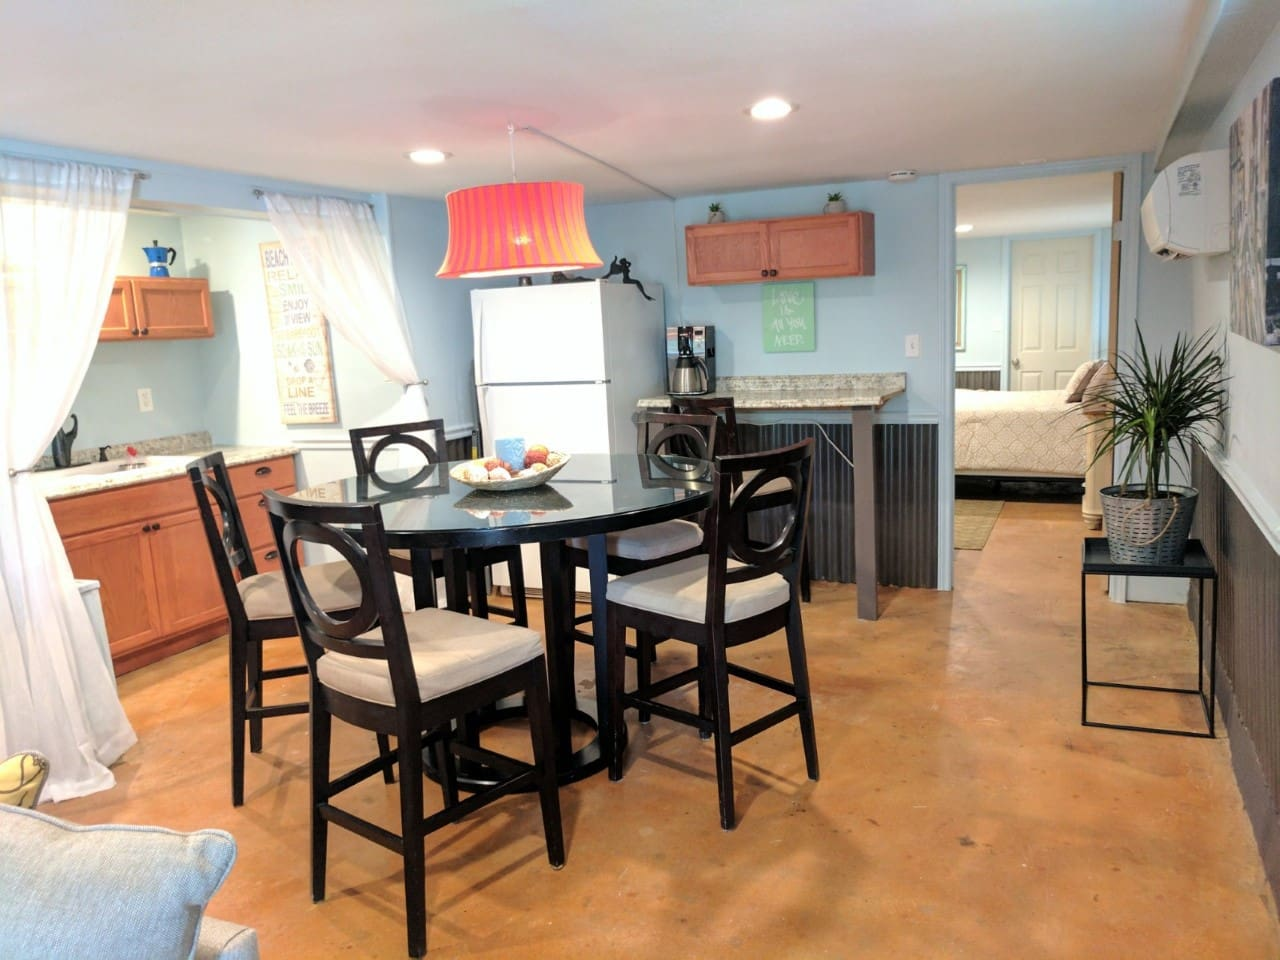 Full Kitchen with stove, fridge,  coffee pot, dishes - your home away from home!